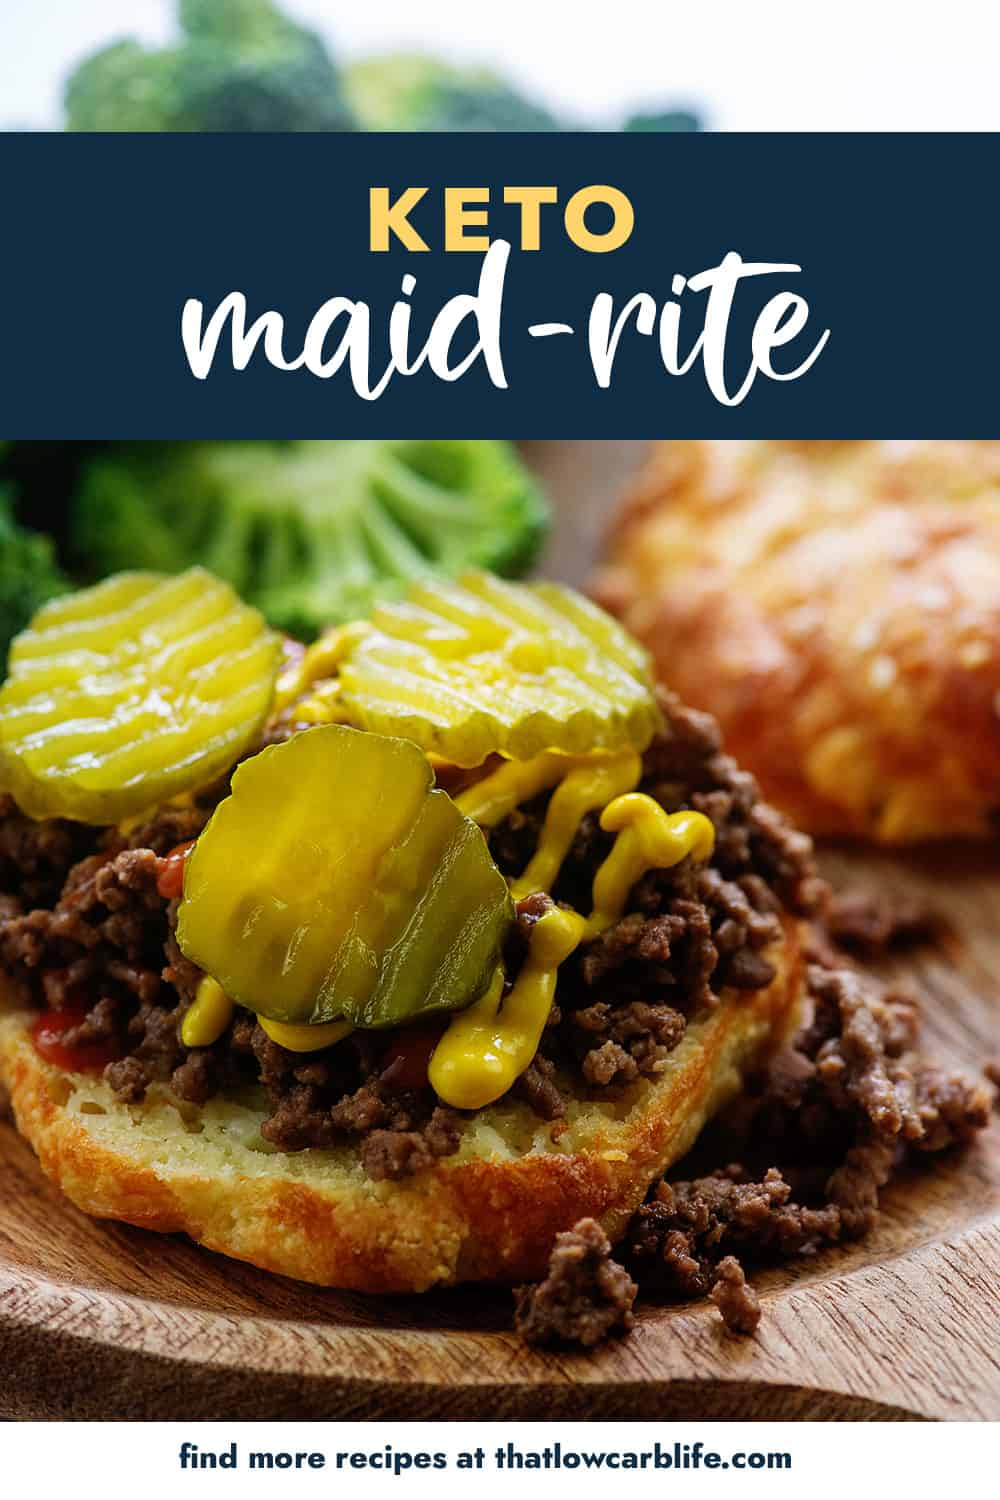 keto maid-rite burger topped with pickles and mustard.